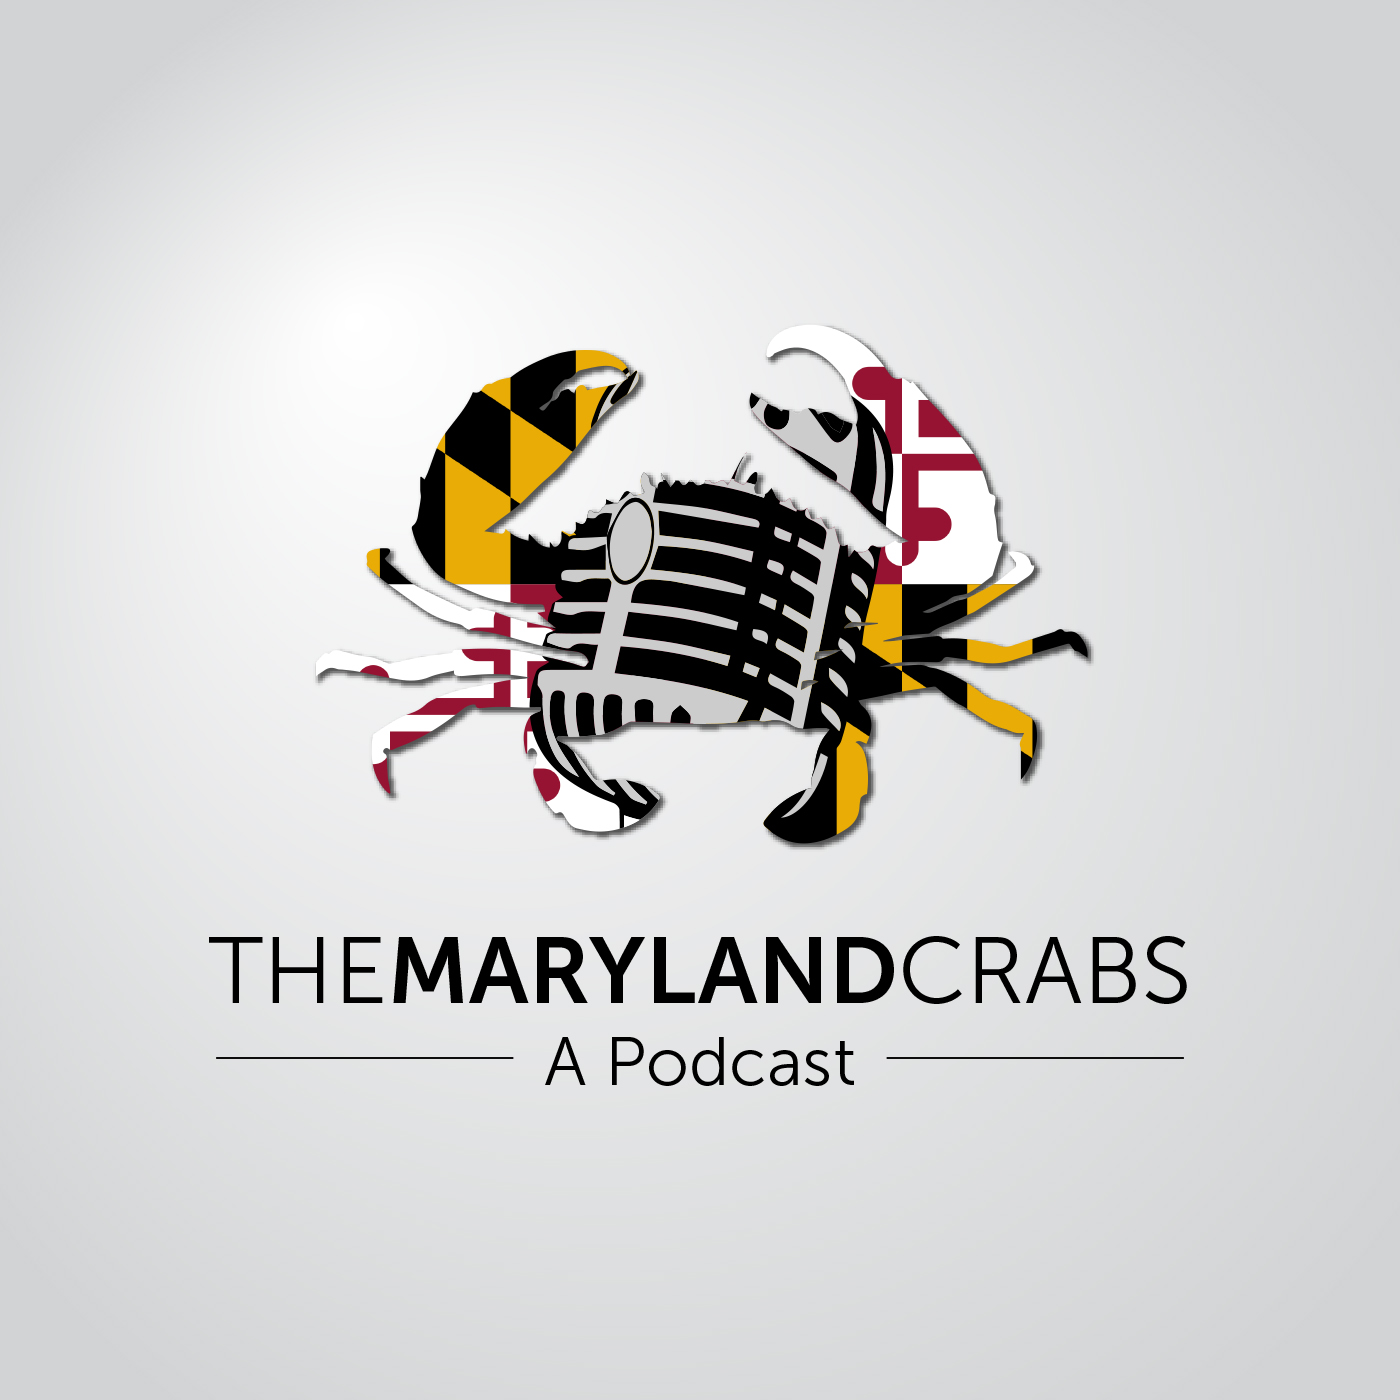 The Maryland Crabs Podcast show art